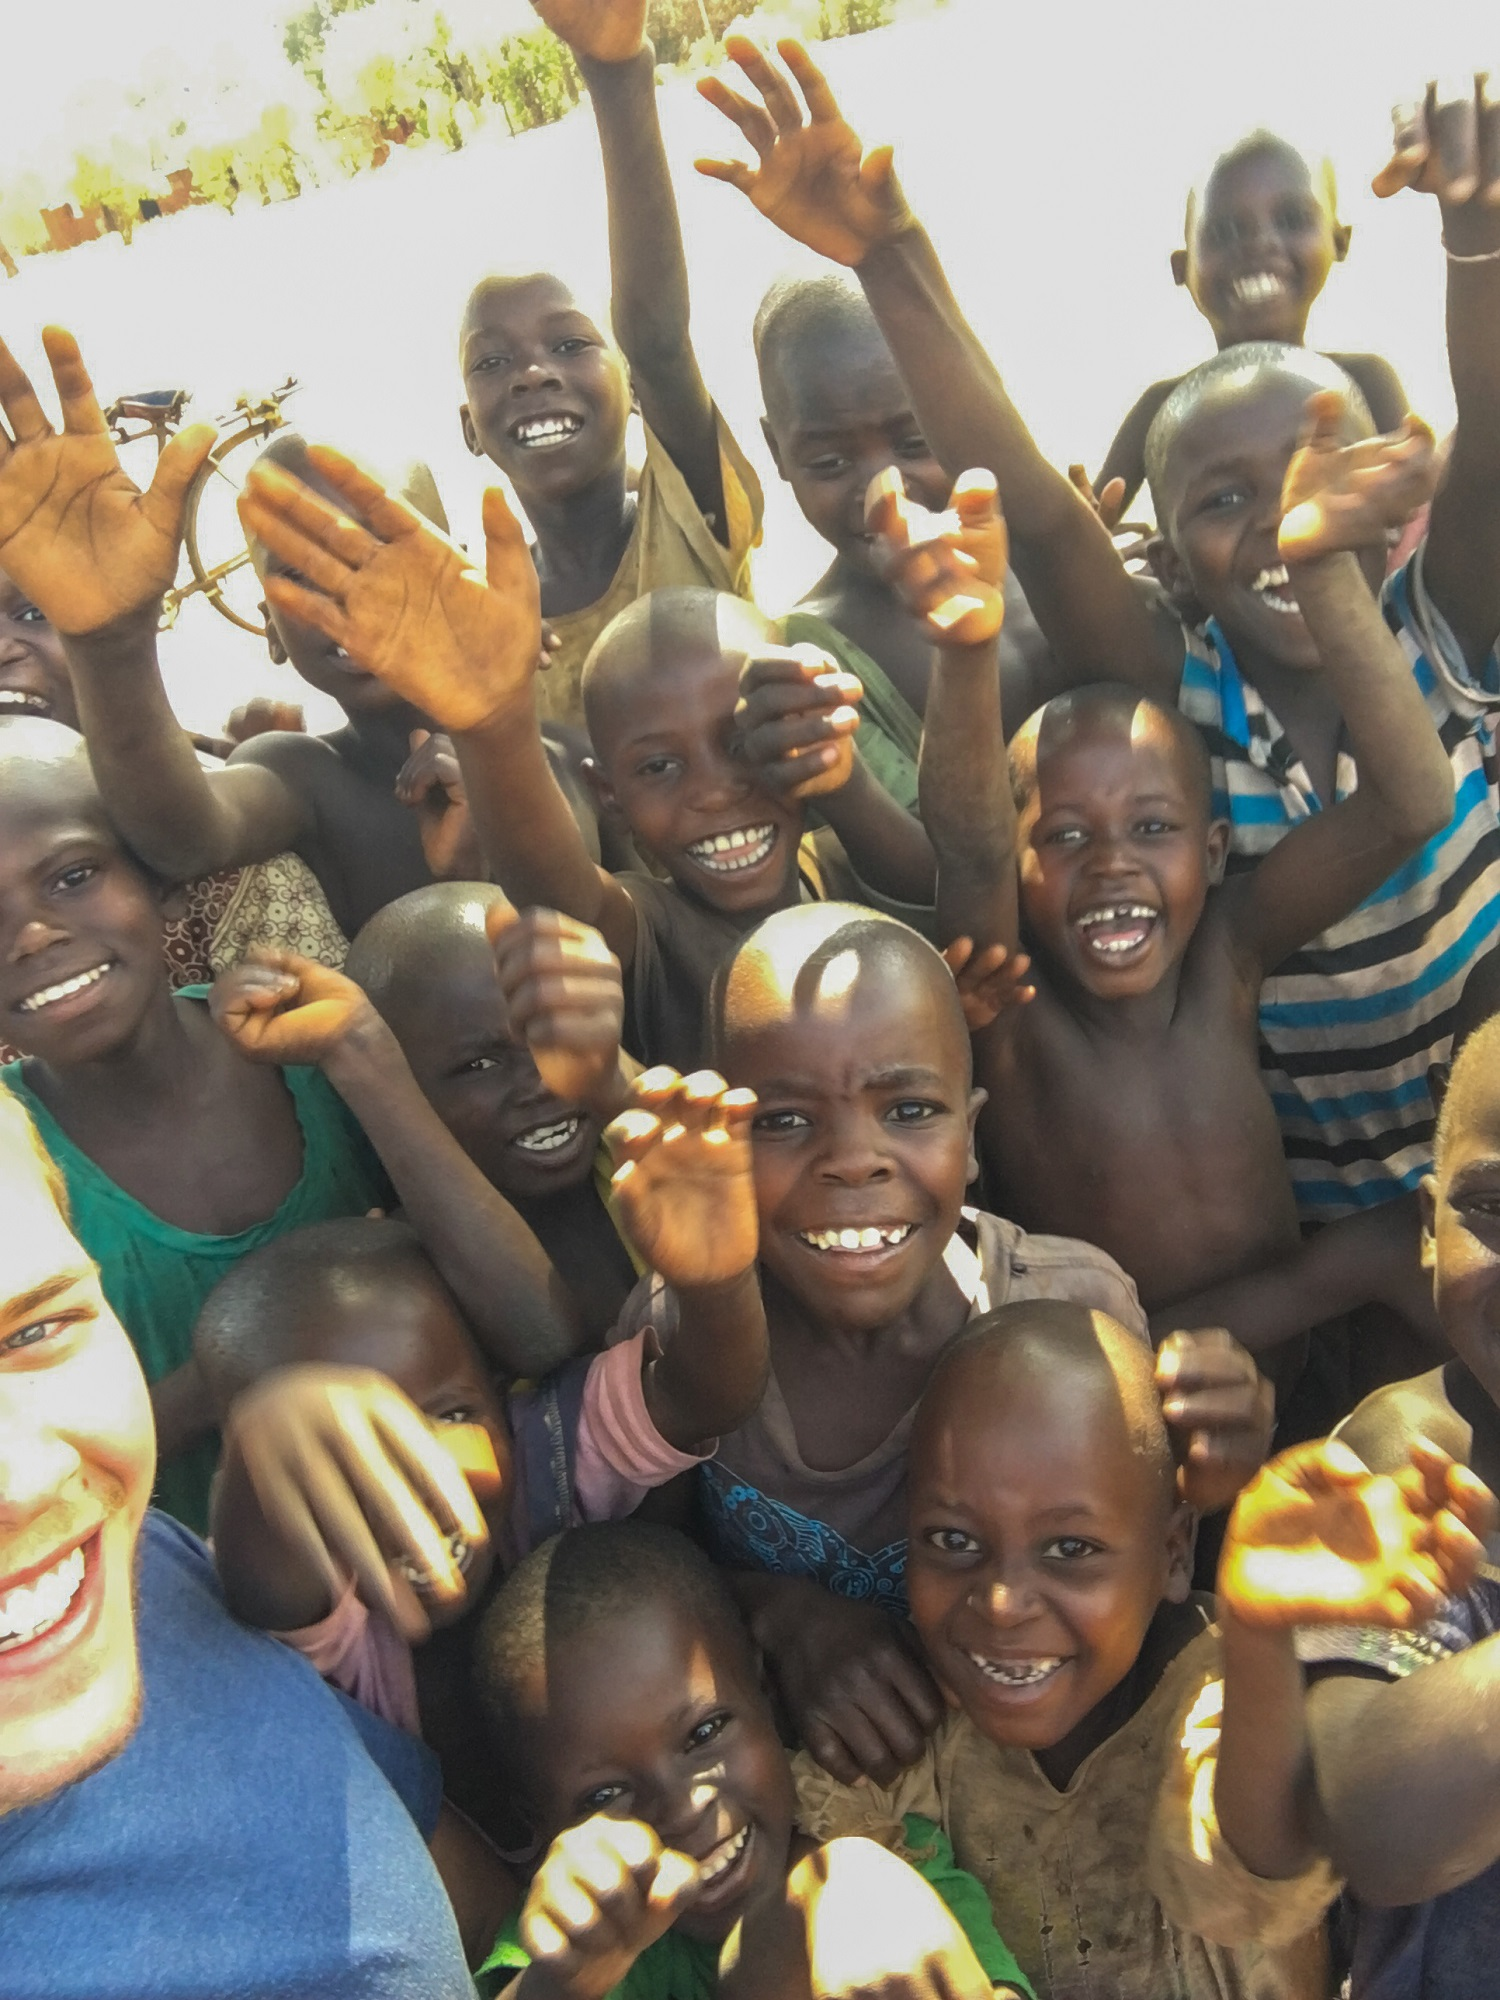 Village children selfie